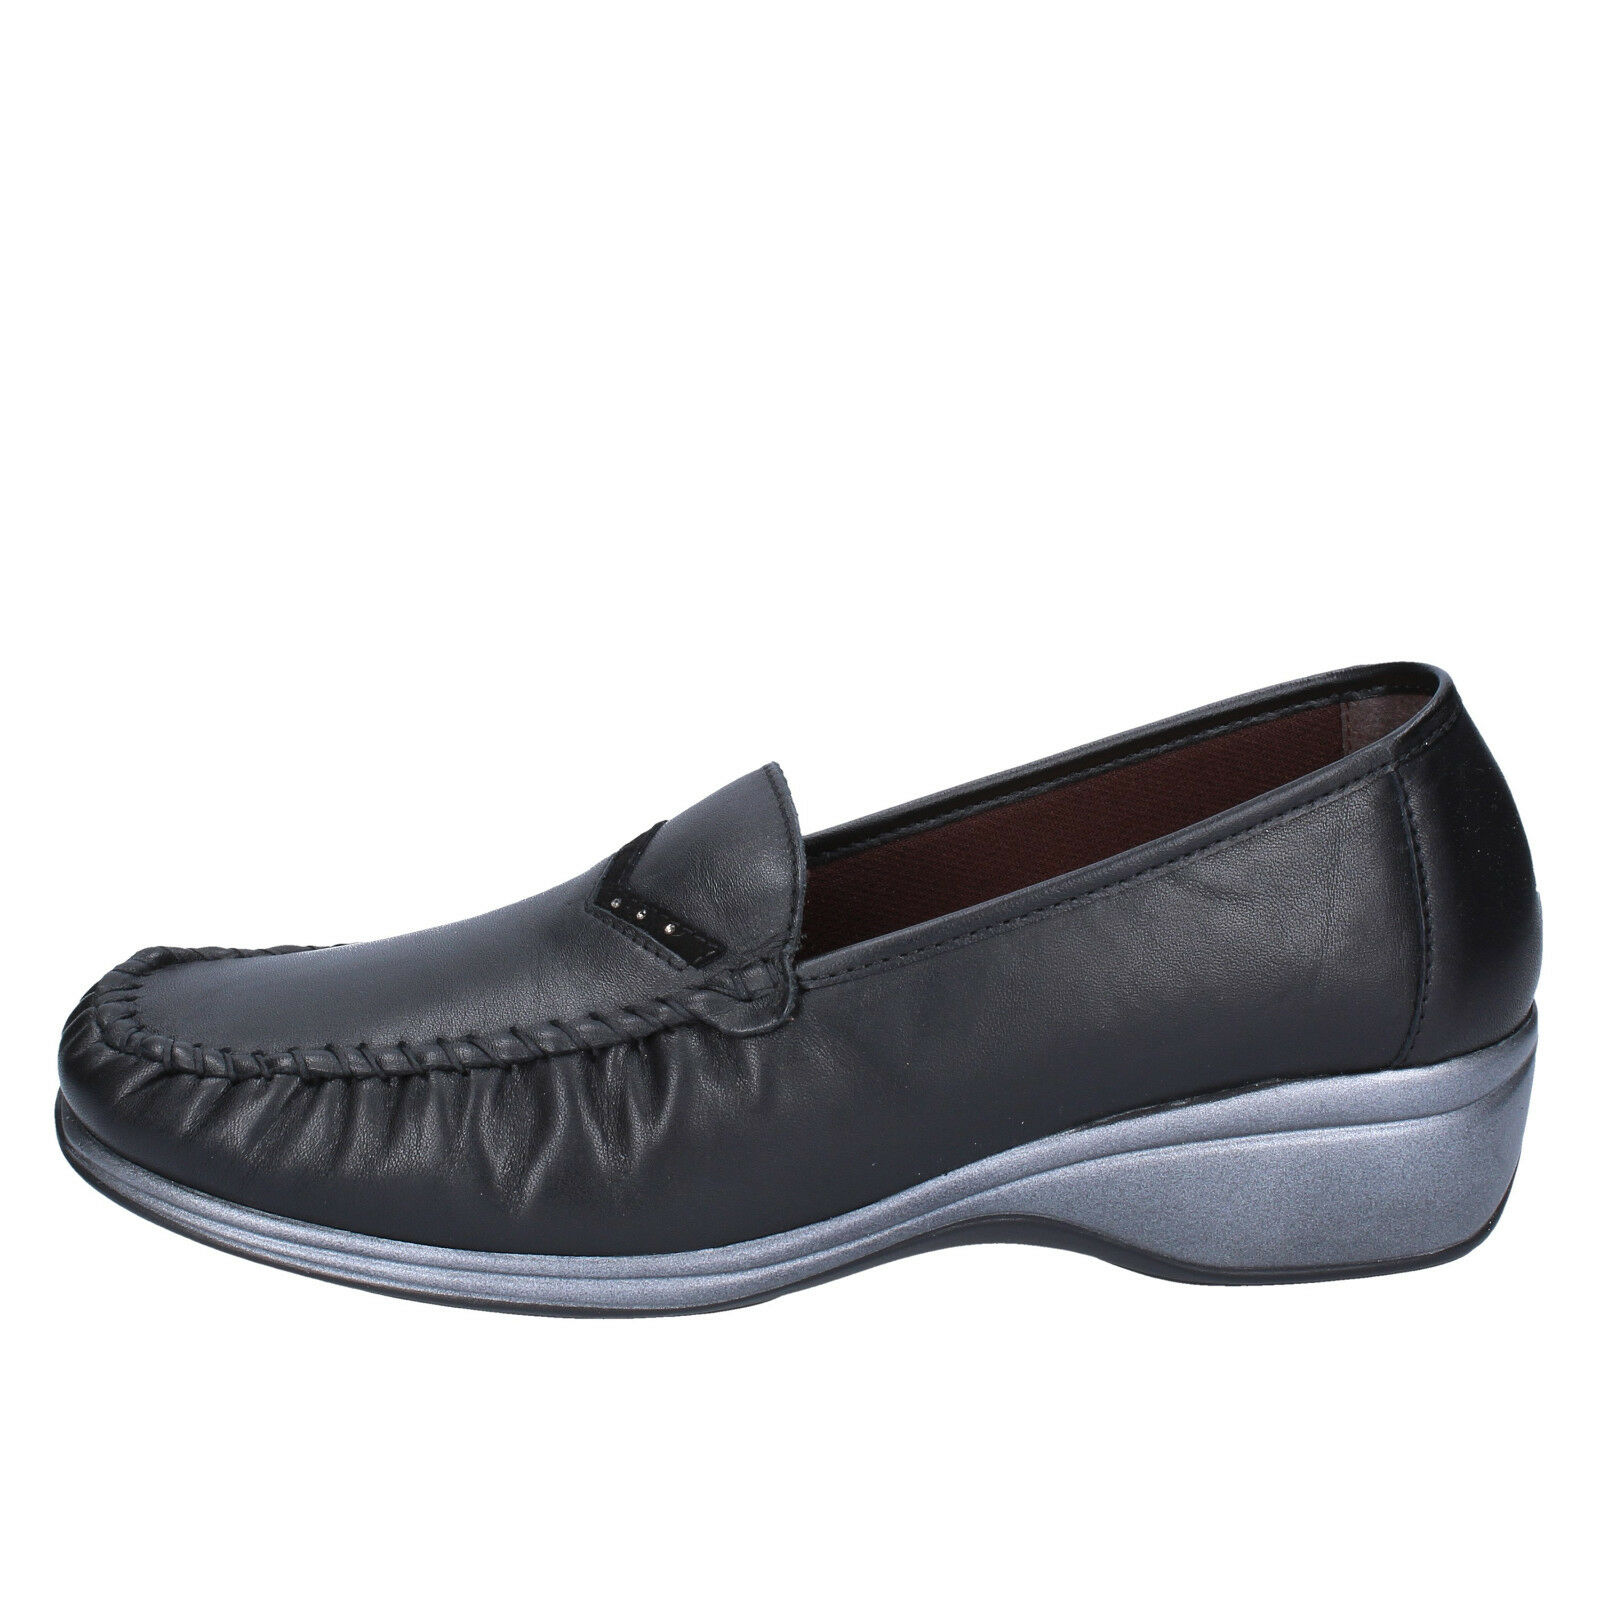 da donna WALKSAN by Susimoda 41 UE SLIP ON NERO PELLE bx556